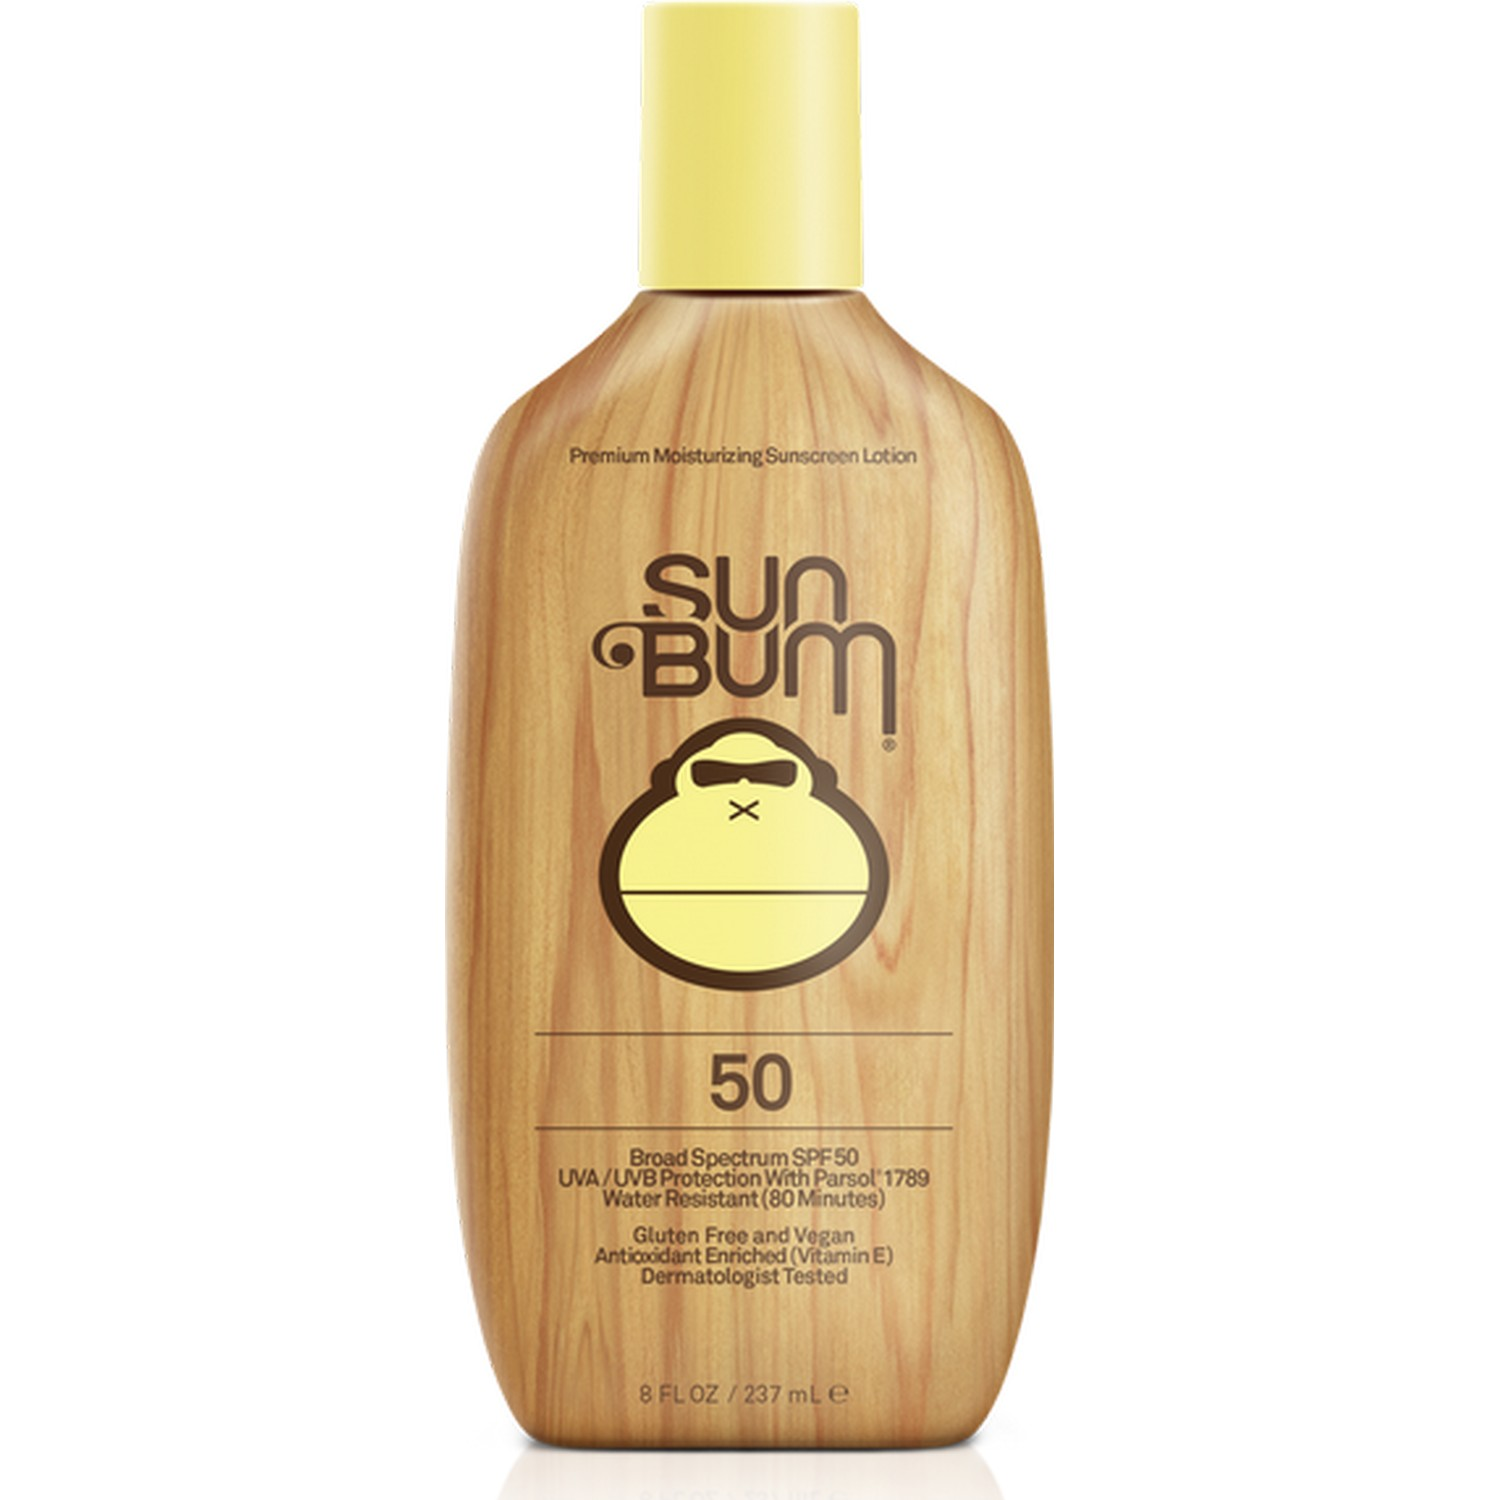 Sun Bum Premium Moisturizing Sunscreen Lotion 50 Broad Spectrum SPF 50 (8.0 fl oz / 237 ml)